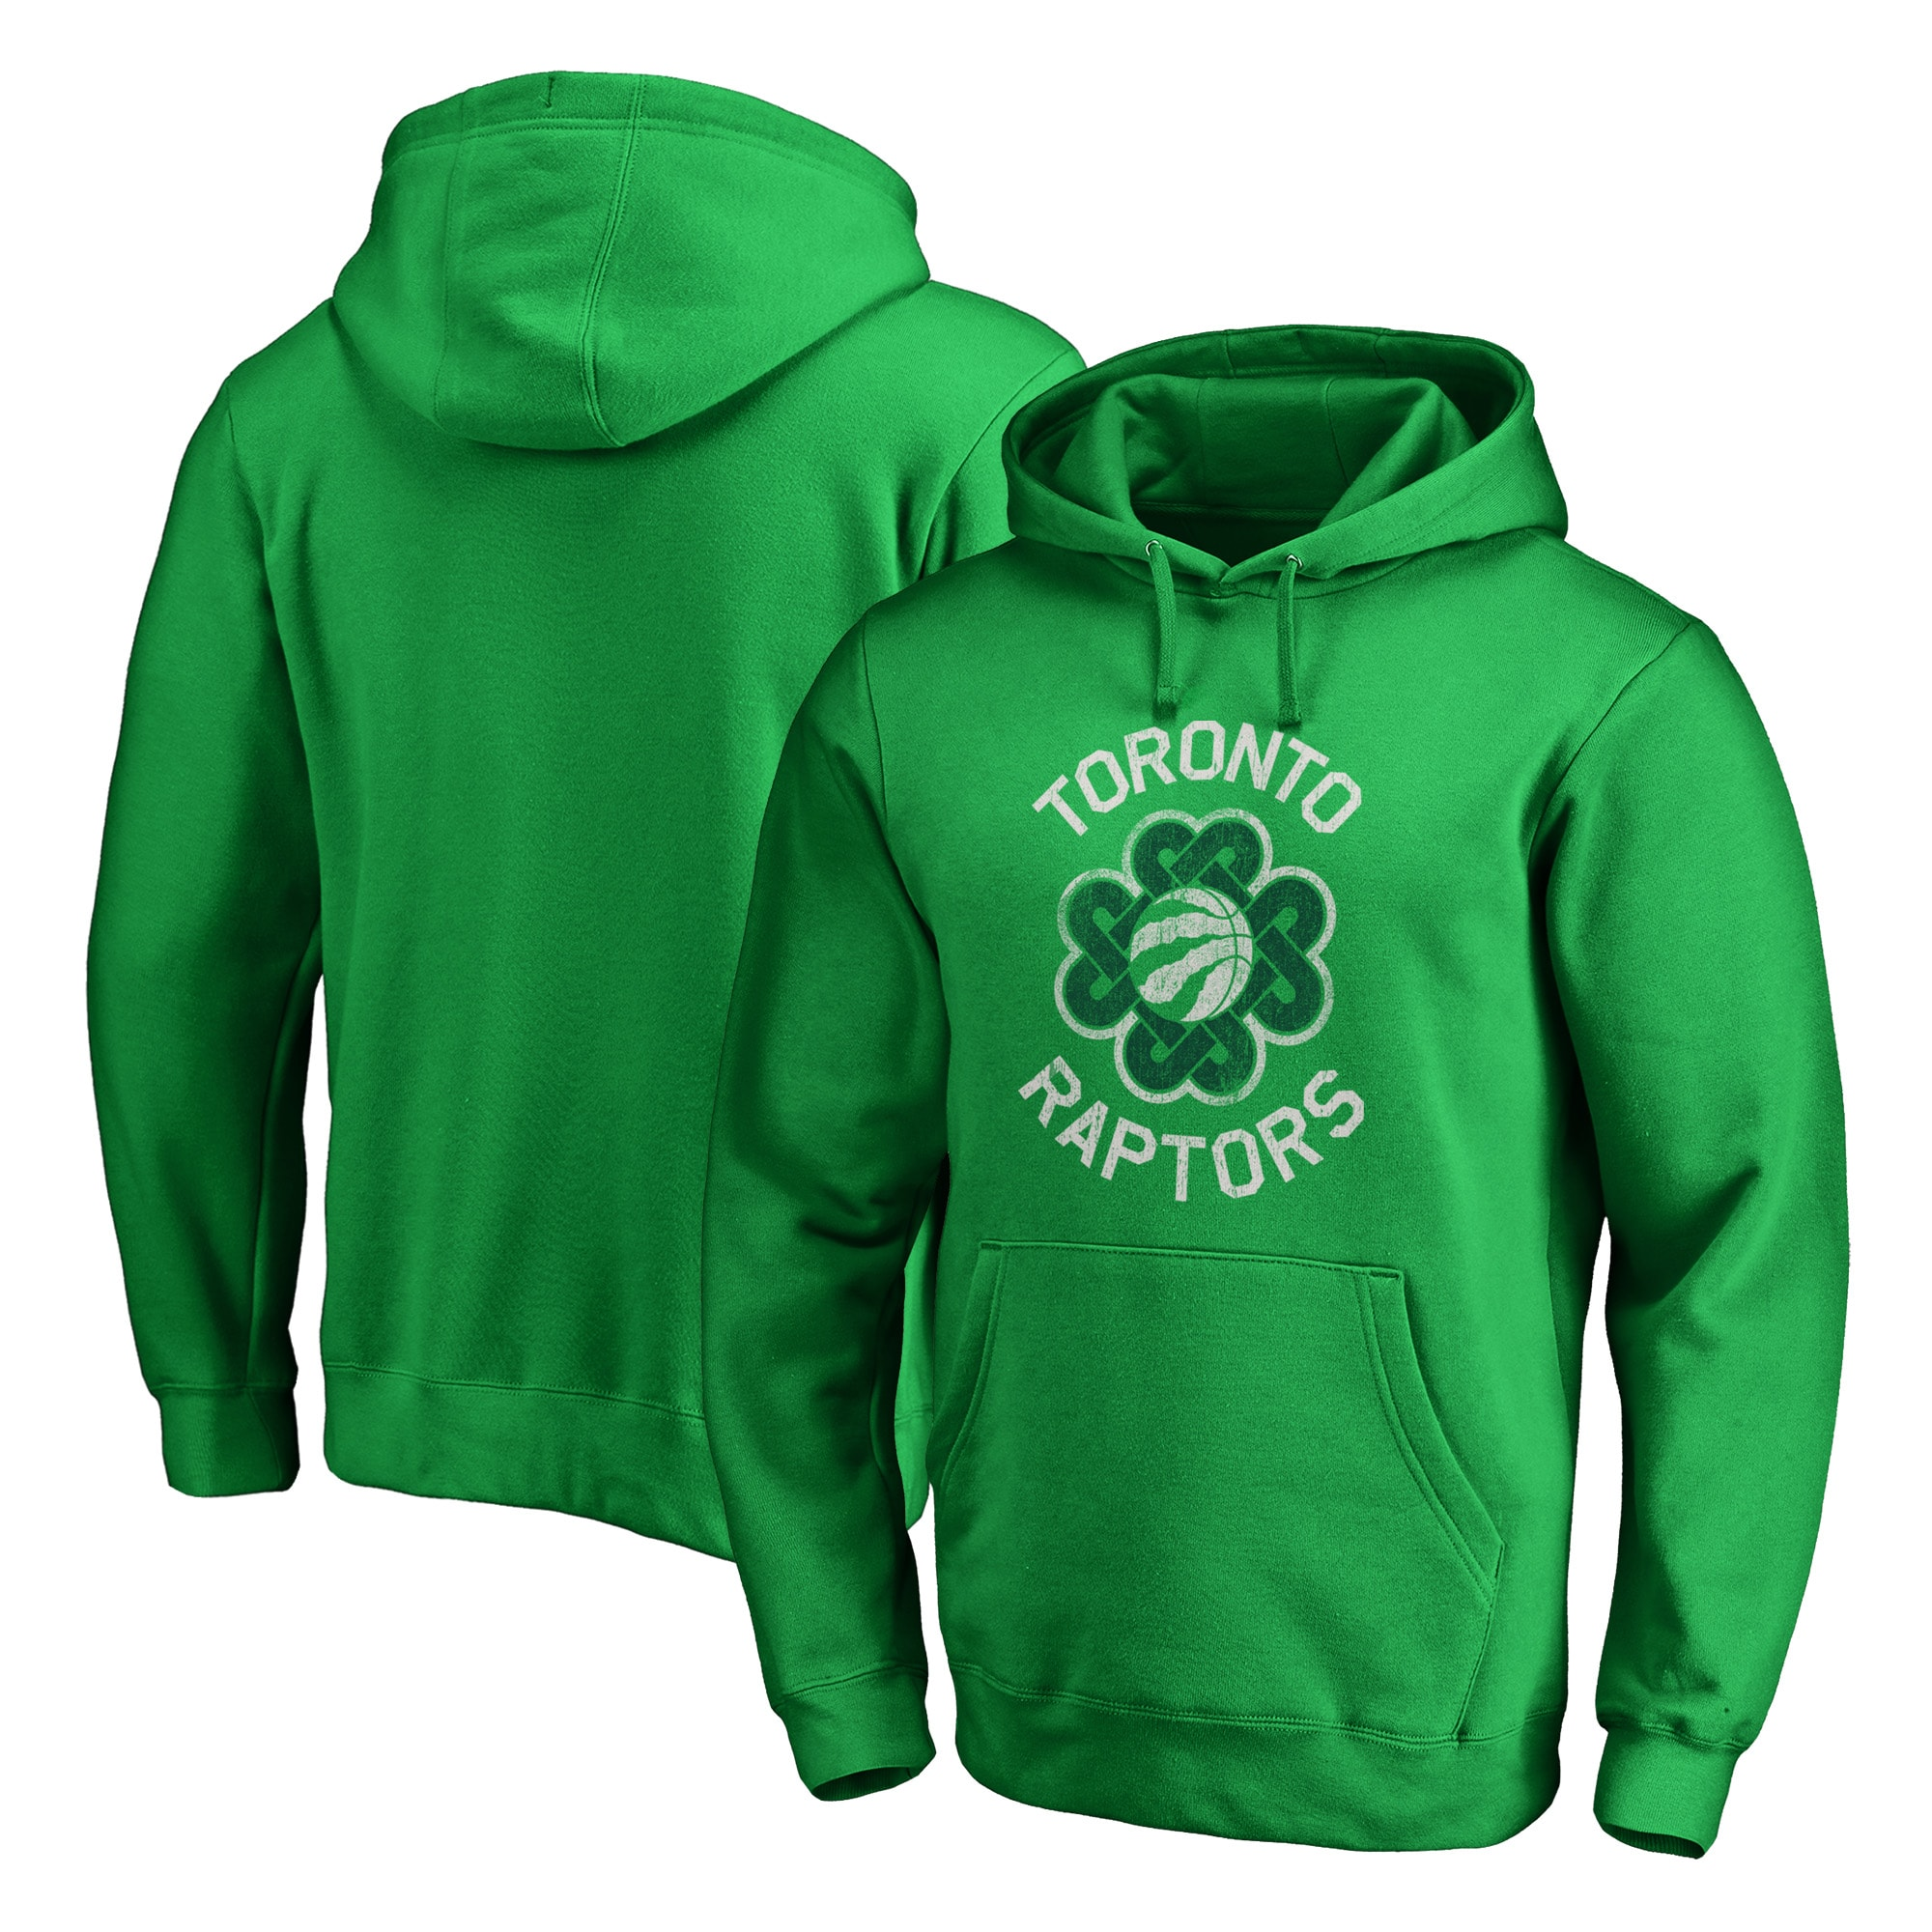 Toronto Raptors Fanatics Branded St. Patrick's Day Luck Tradition Pullover Hoodie - Kelly Green